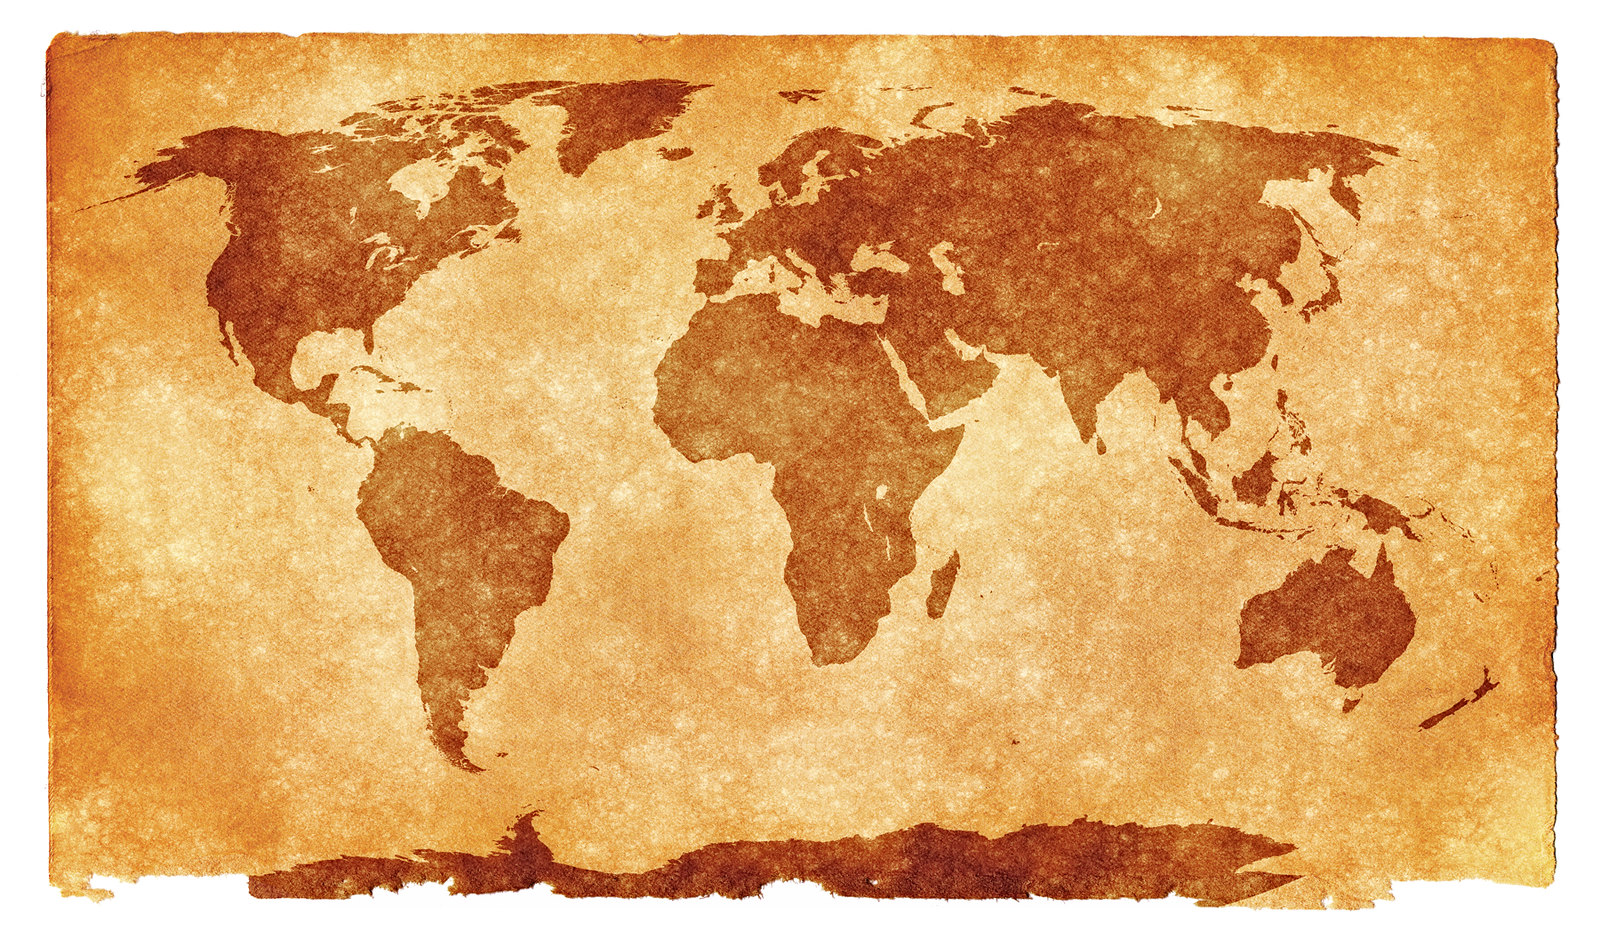 All Sizes World Grunge Map Sepia Flickr Photo Sharing - Large sepia world map